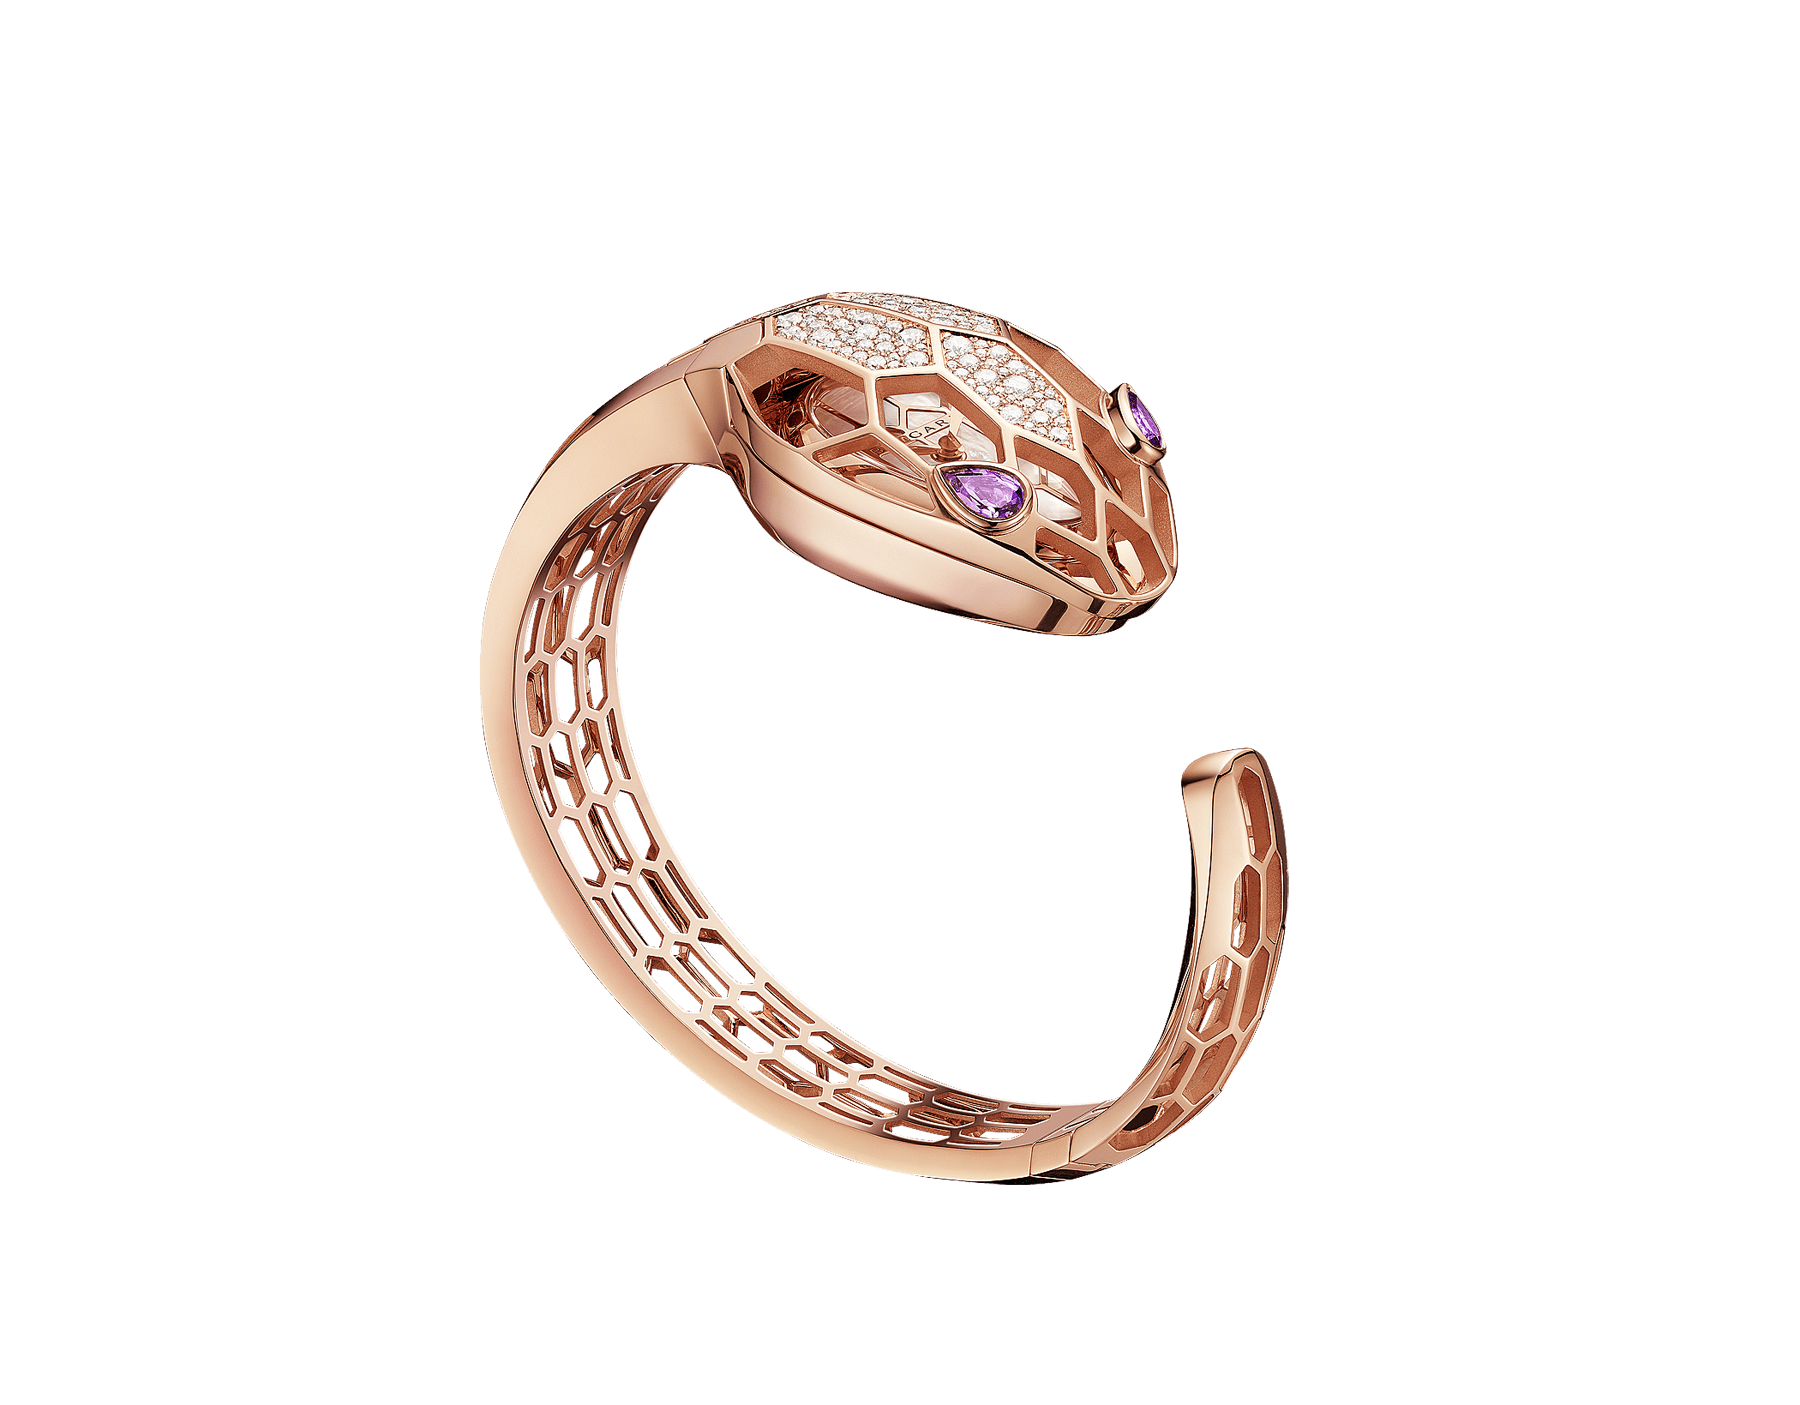 Serpenti Misteriosi Secret Watch with 18 kt rose gold skeletonized case set with round brilliant-cut diamonds, white mother-of-pearl dial, 18 kt rose gold skeletonized bangle bracelet and pear-shaped amethyst eyes. SrpntMister-SecretWtc-rose-gold image 3